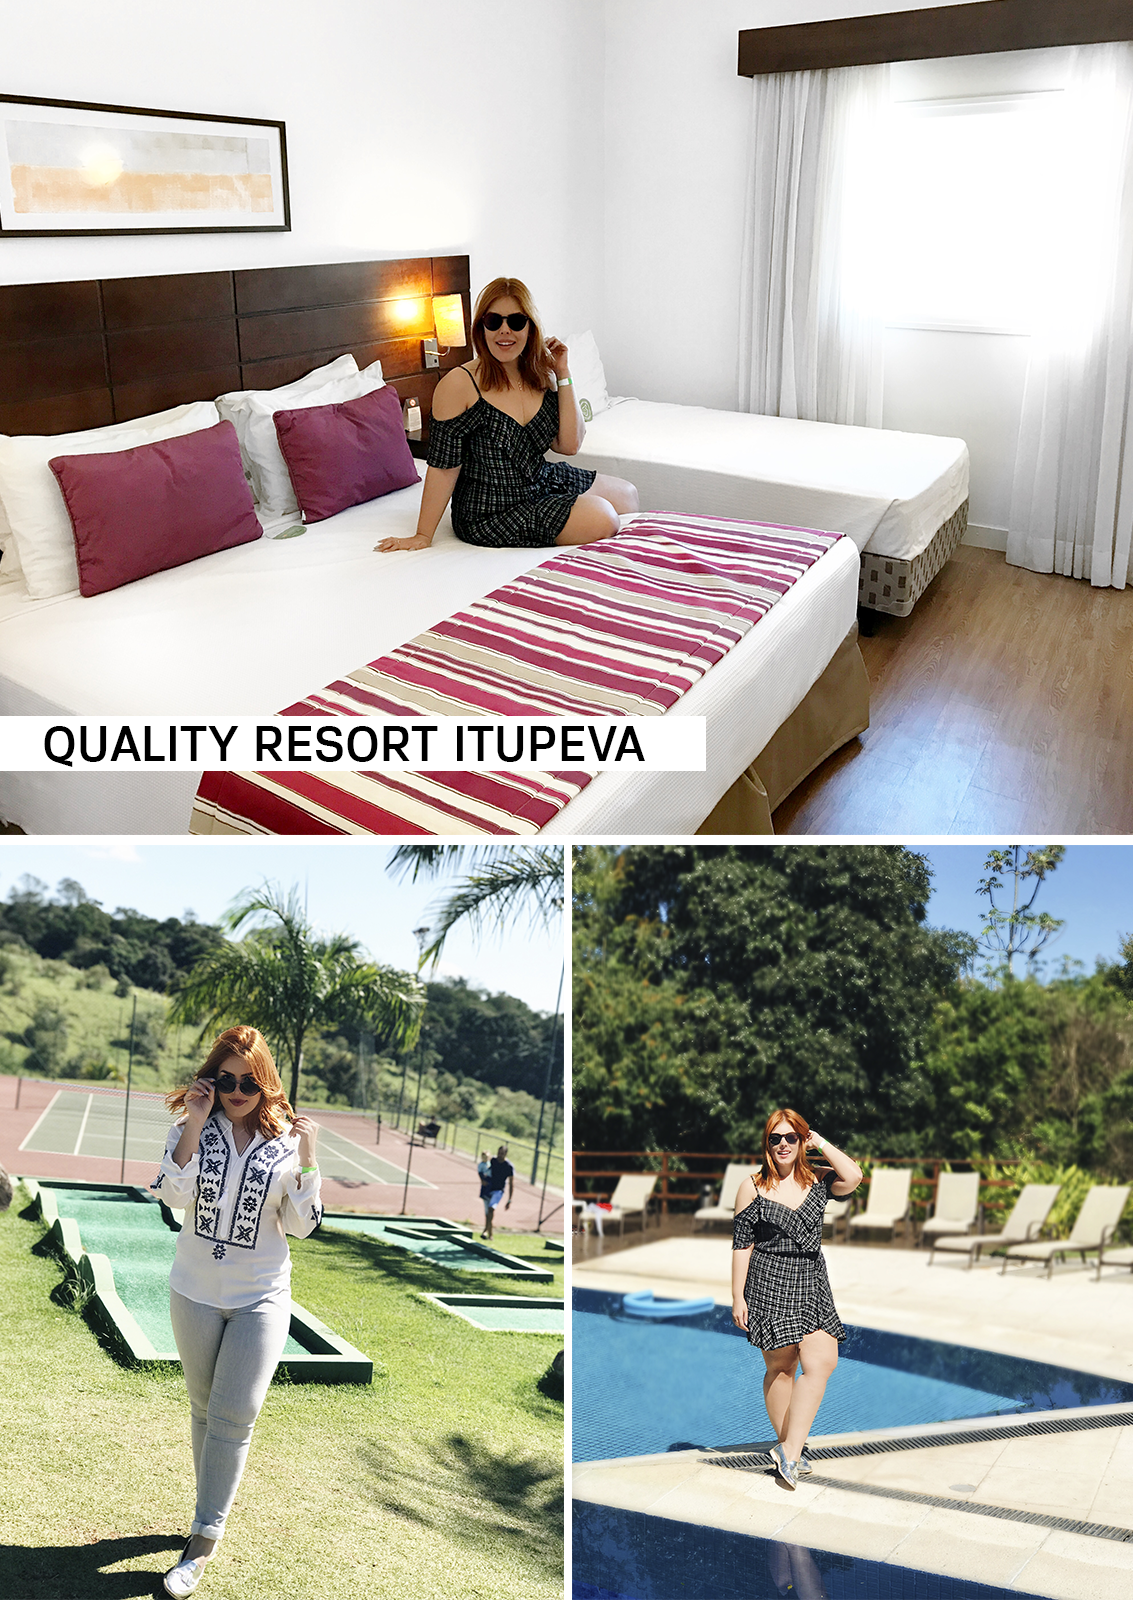 Quality Resort Itupeva 1